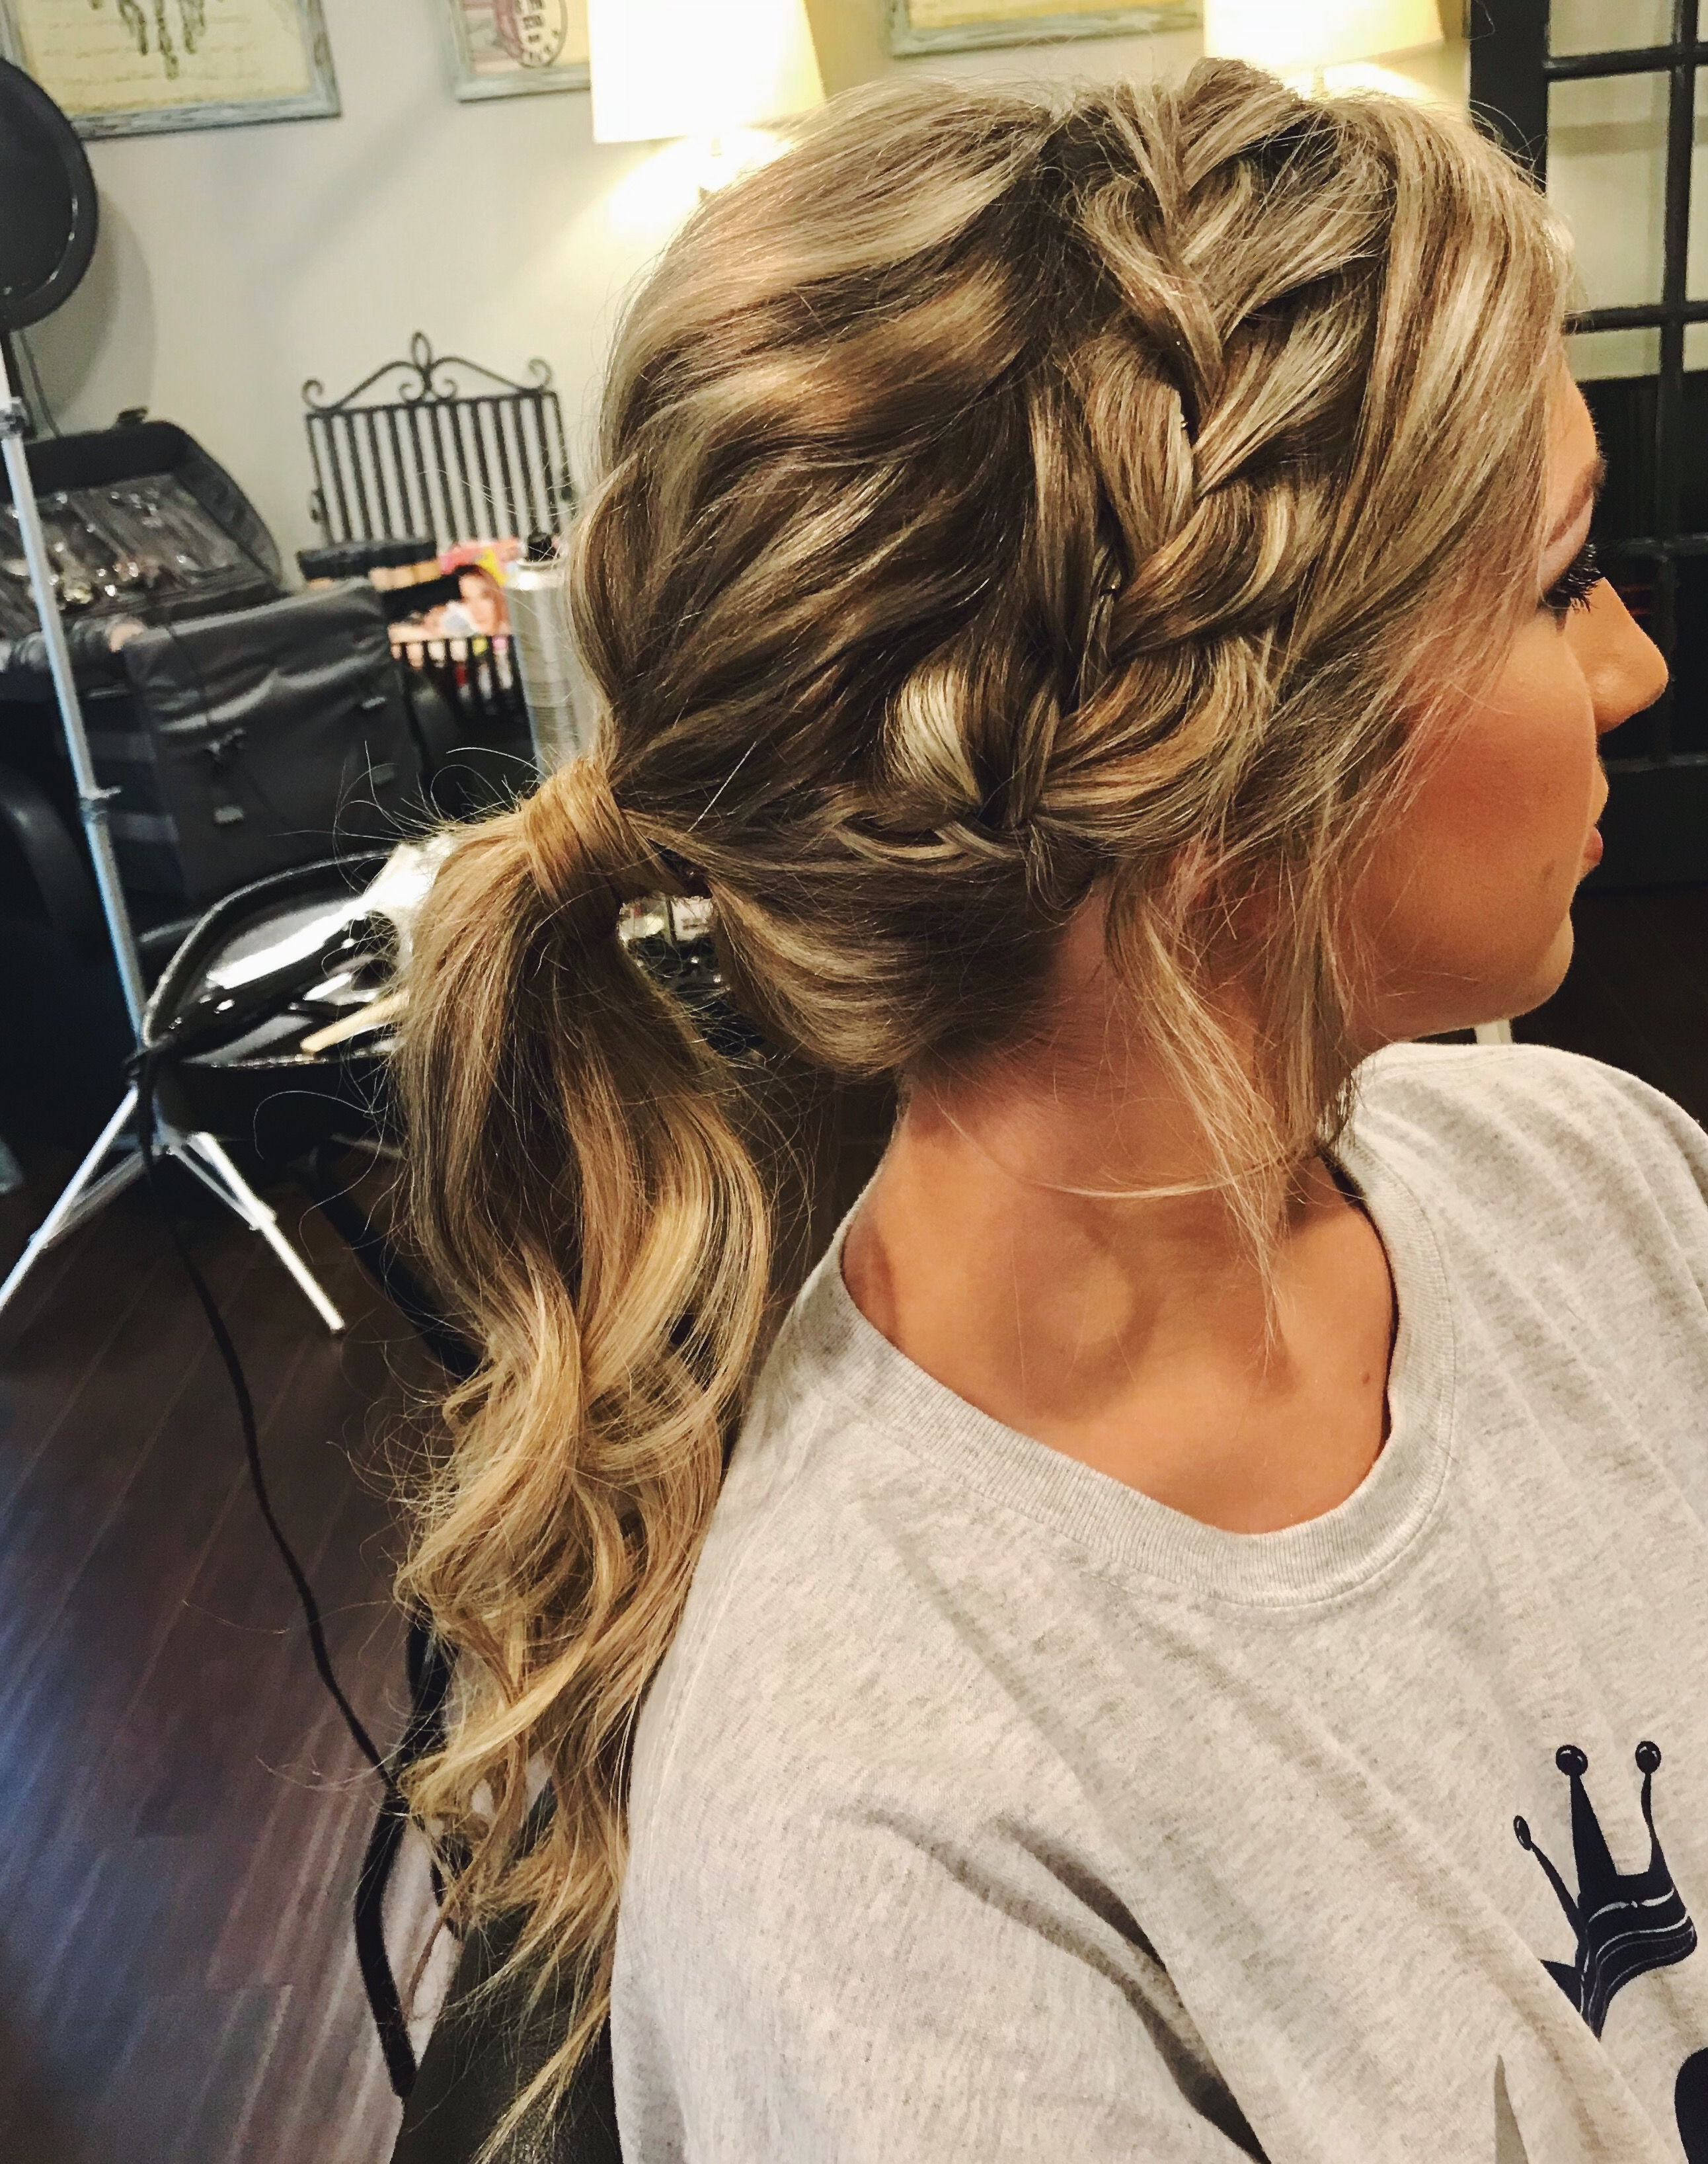 Prom Hairstyles For In Widely Used Messy Braided Prom Updos (View 4 of 20)